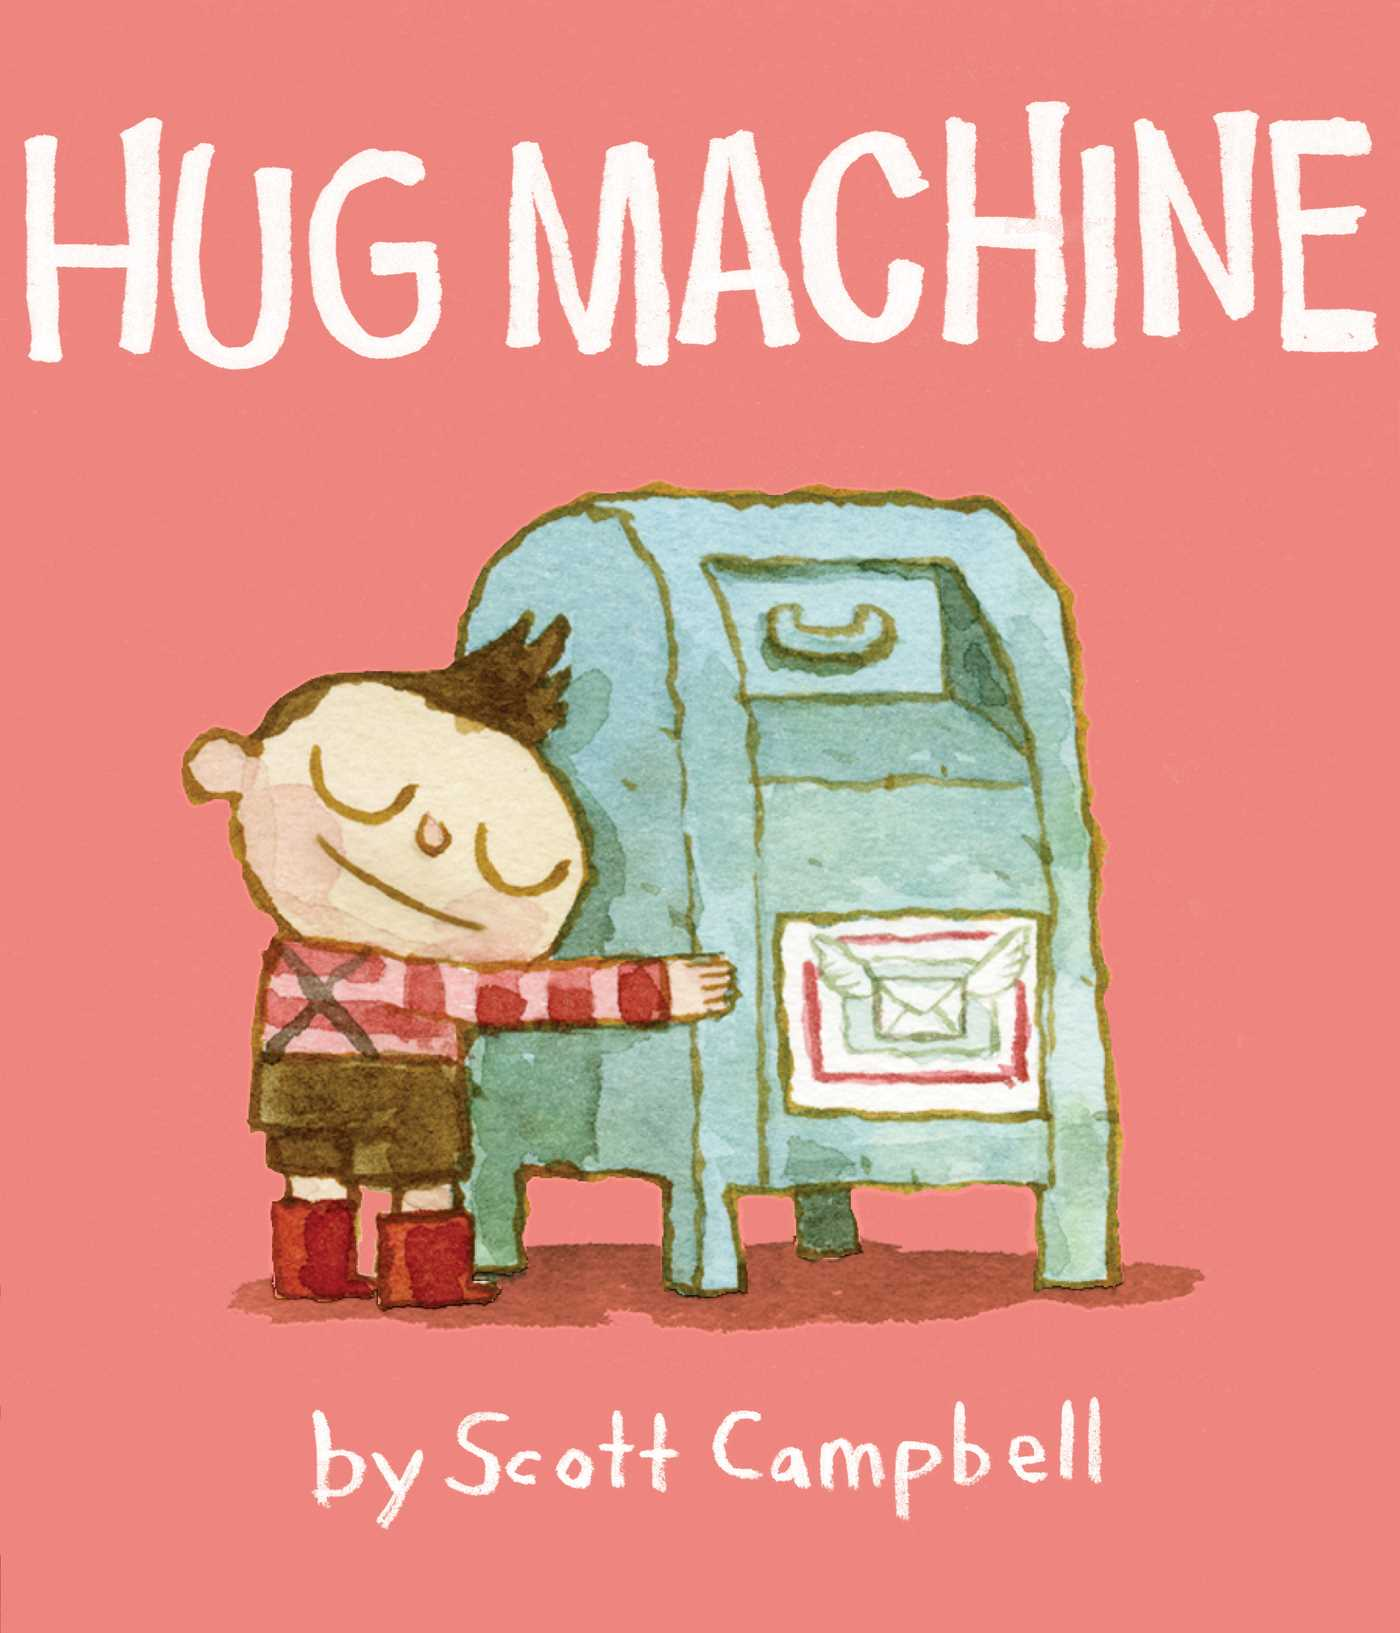 Hug-machine-9781442459359_hr